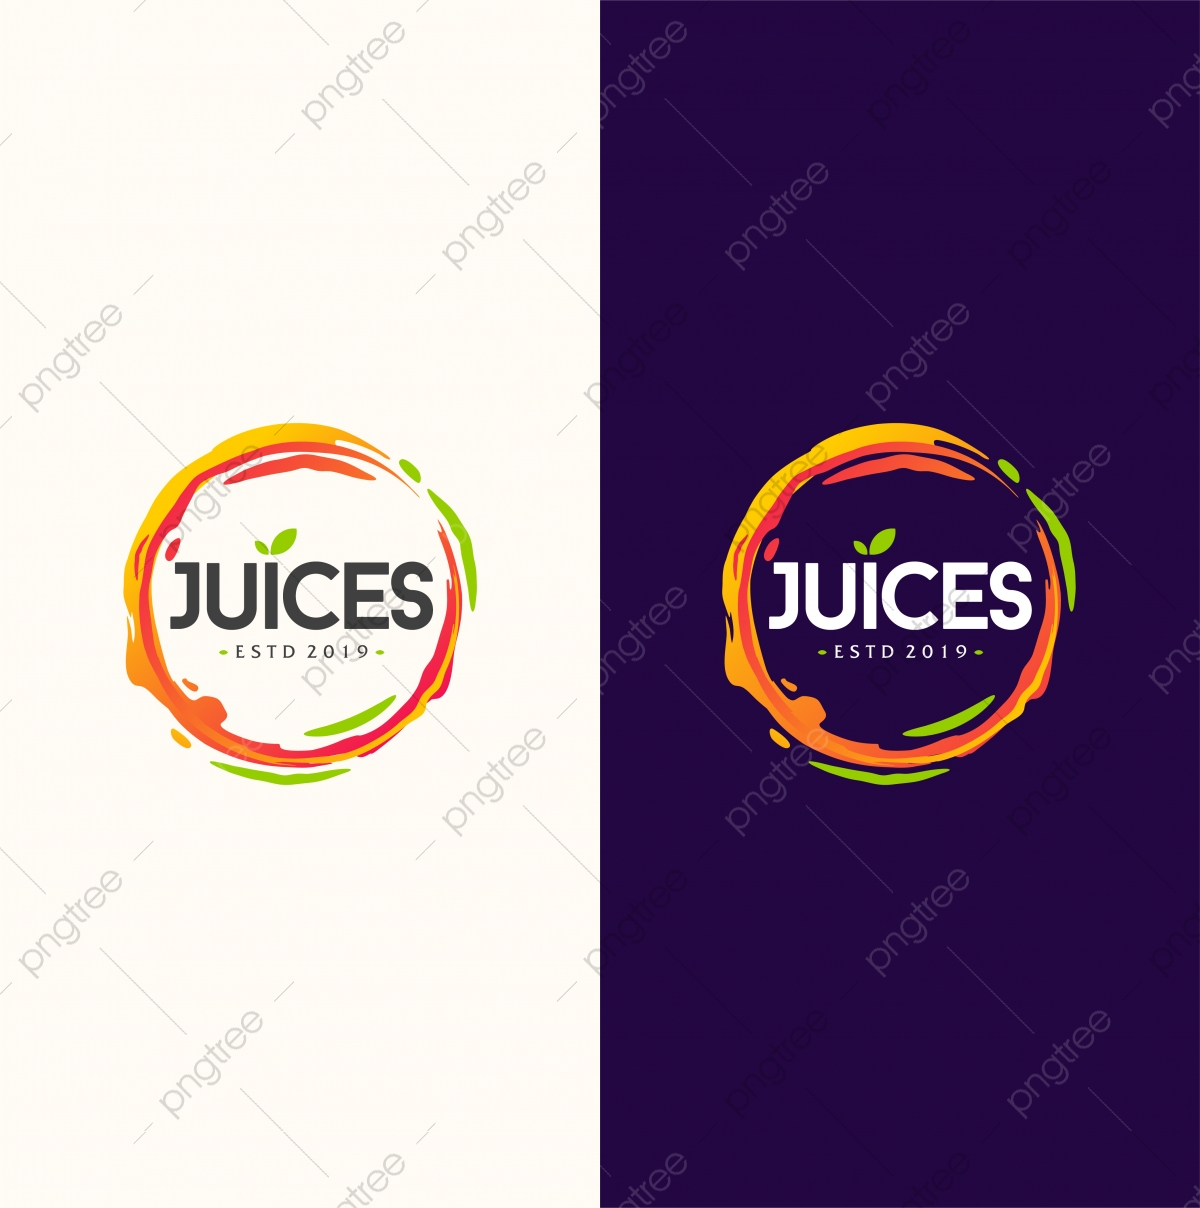 juice logo design vector illustration template for free download on pngtree juice logo design vector illustration